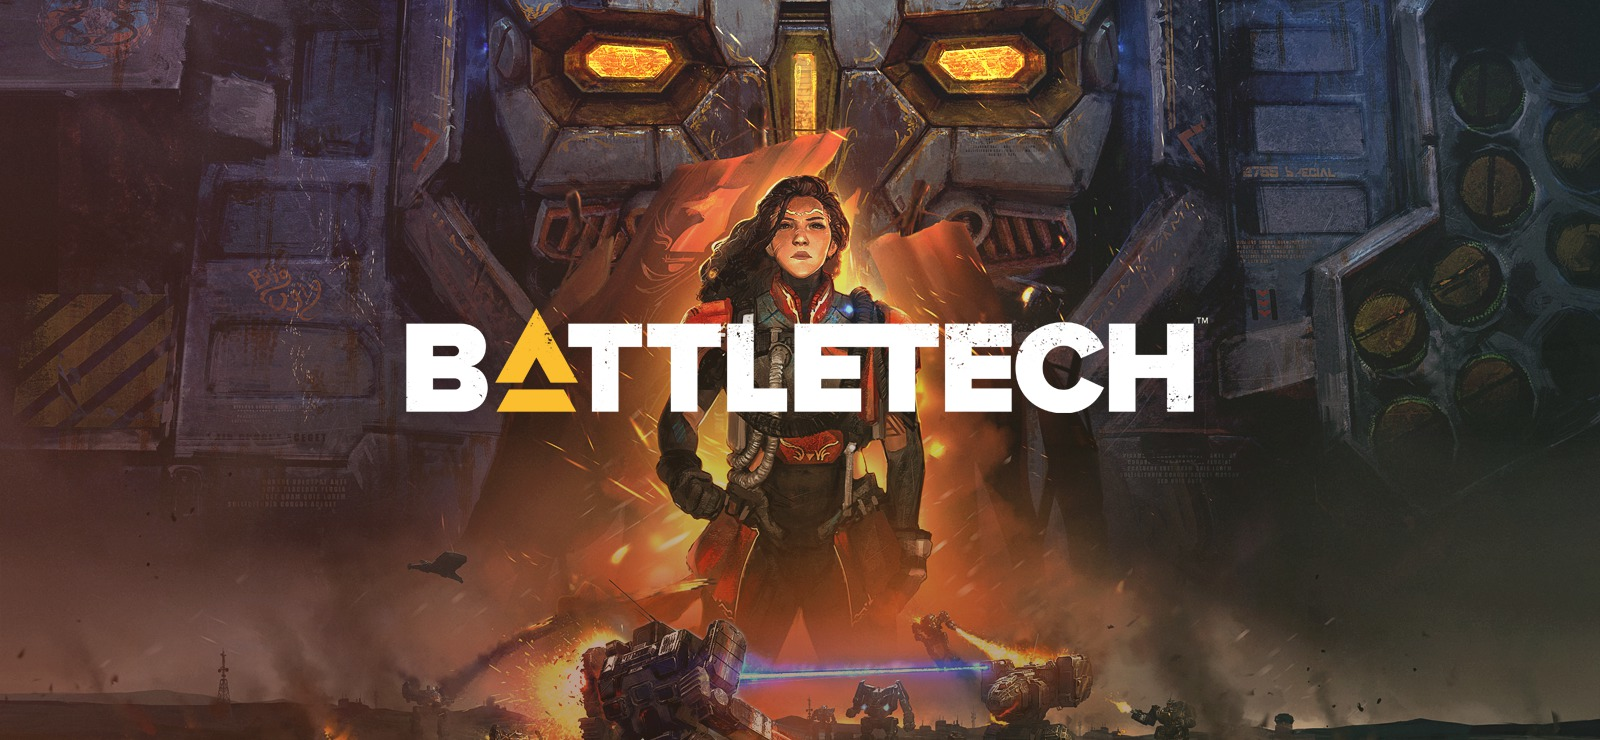 Battletech PC Game Full Version Free Download